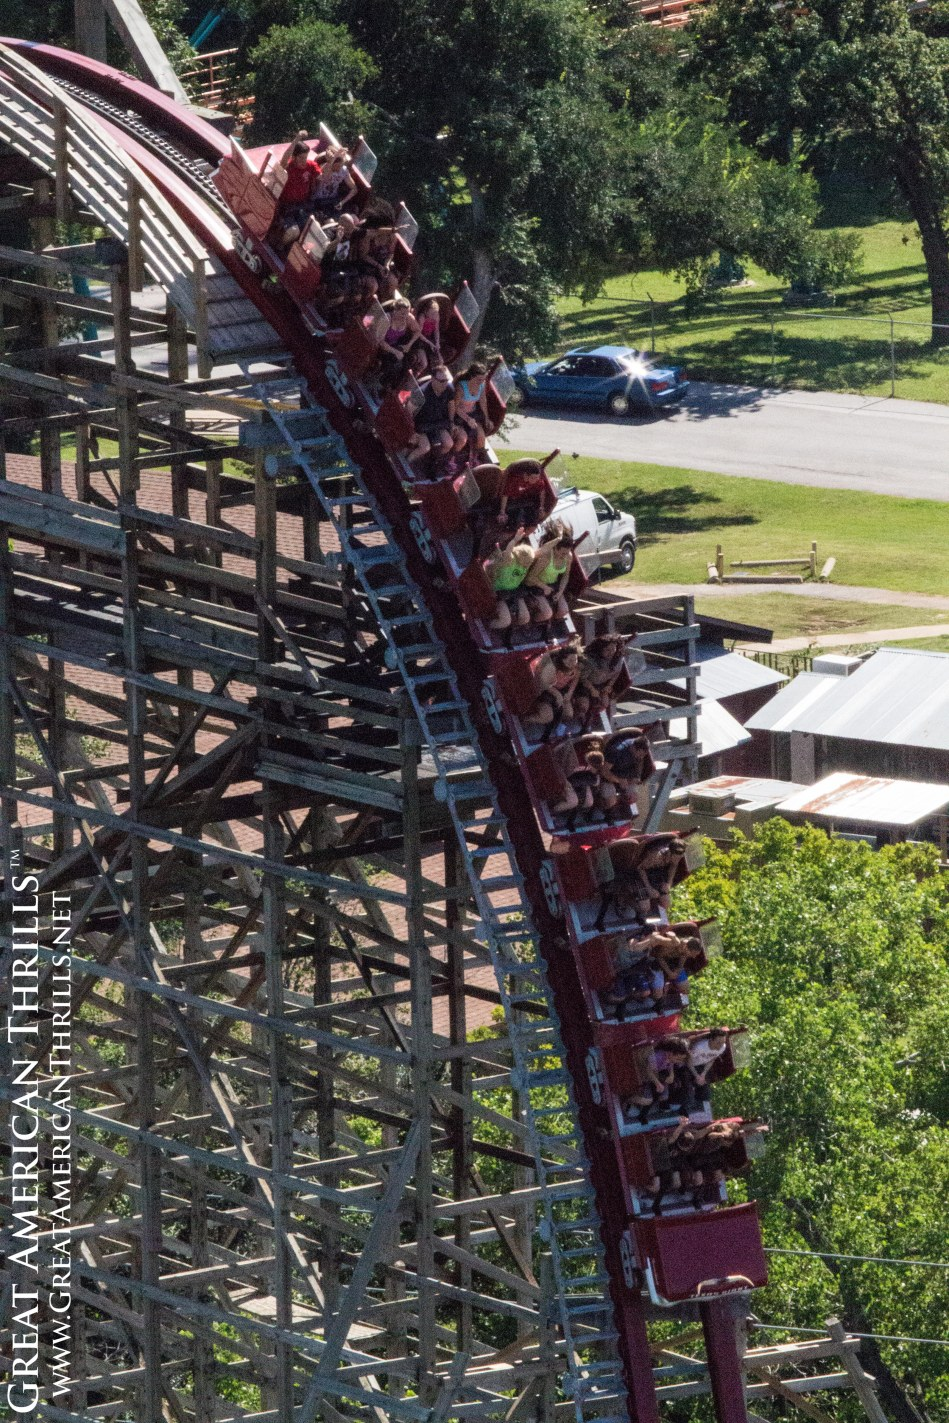 New Texas Giant at Six Flags Over Texas. Photo (c) 2013 Great American Thrills and Kris Rowberry.